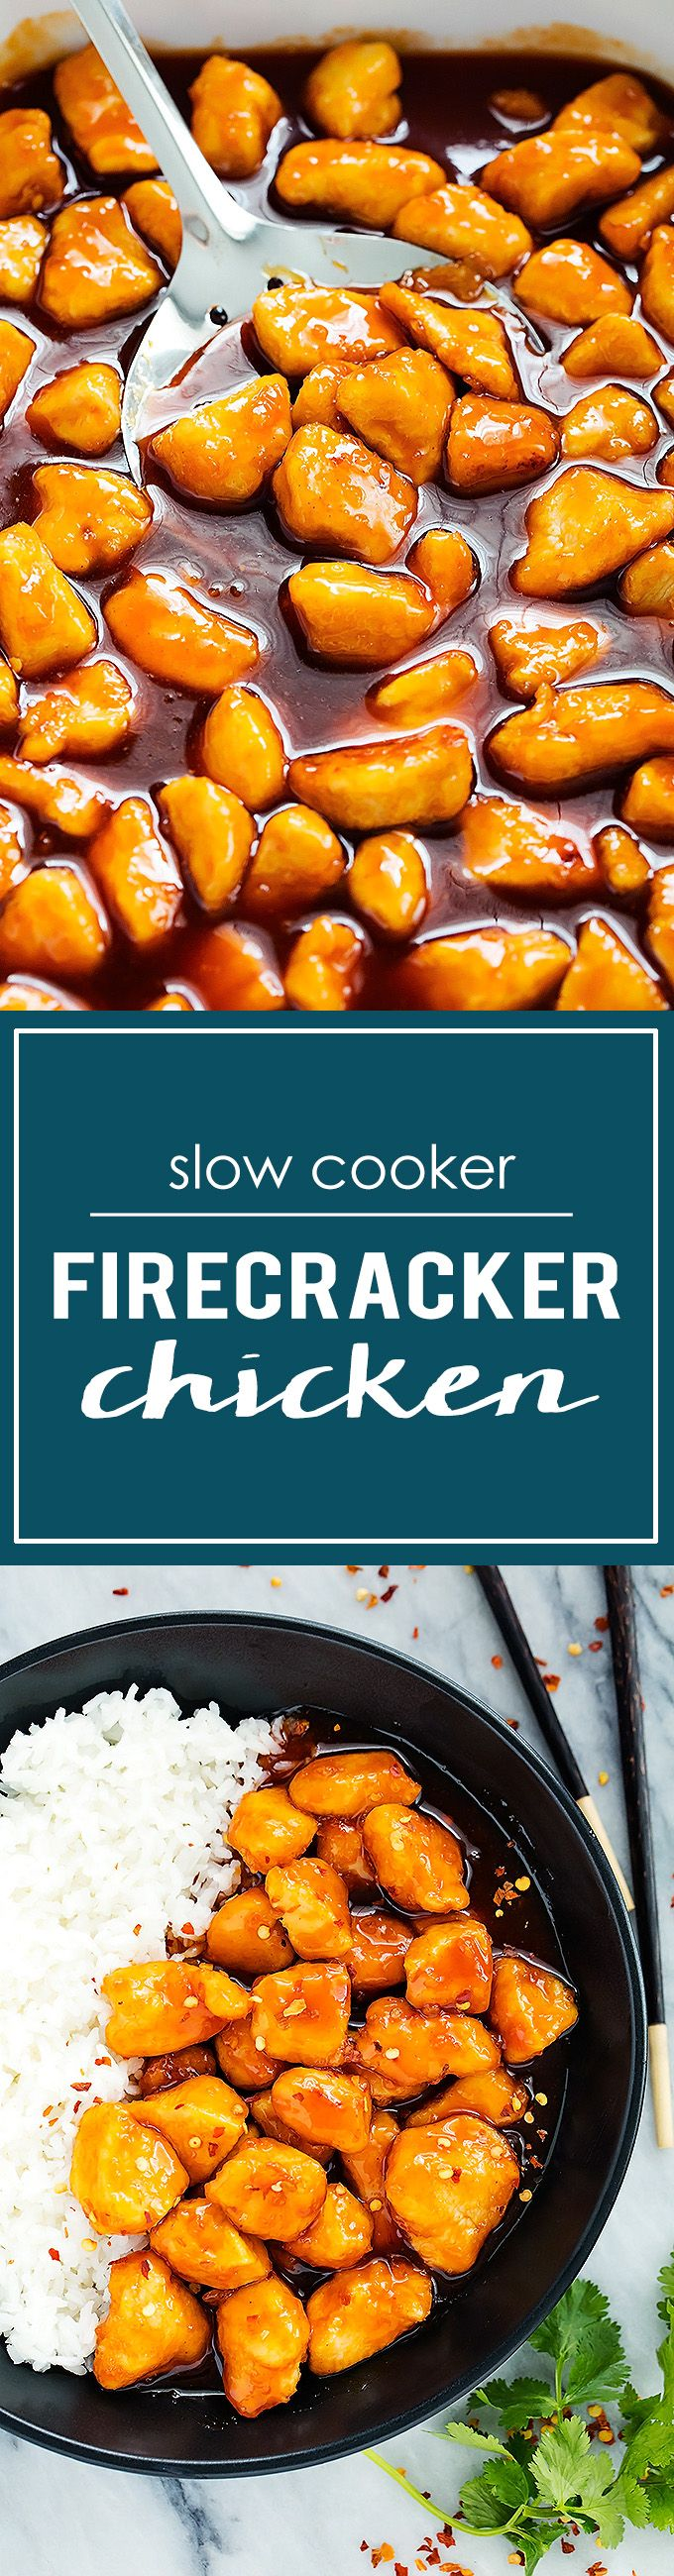 Spicy, saucy firecracker chicken made in right in your slow cooker. I think I'm doing some wishful cooking. And by wishful cooking I mean…